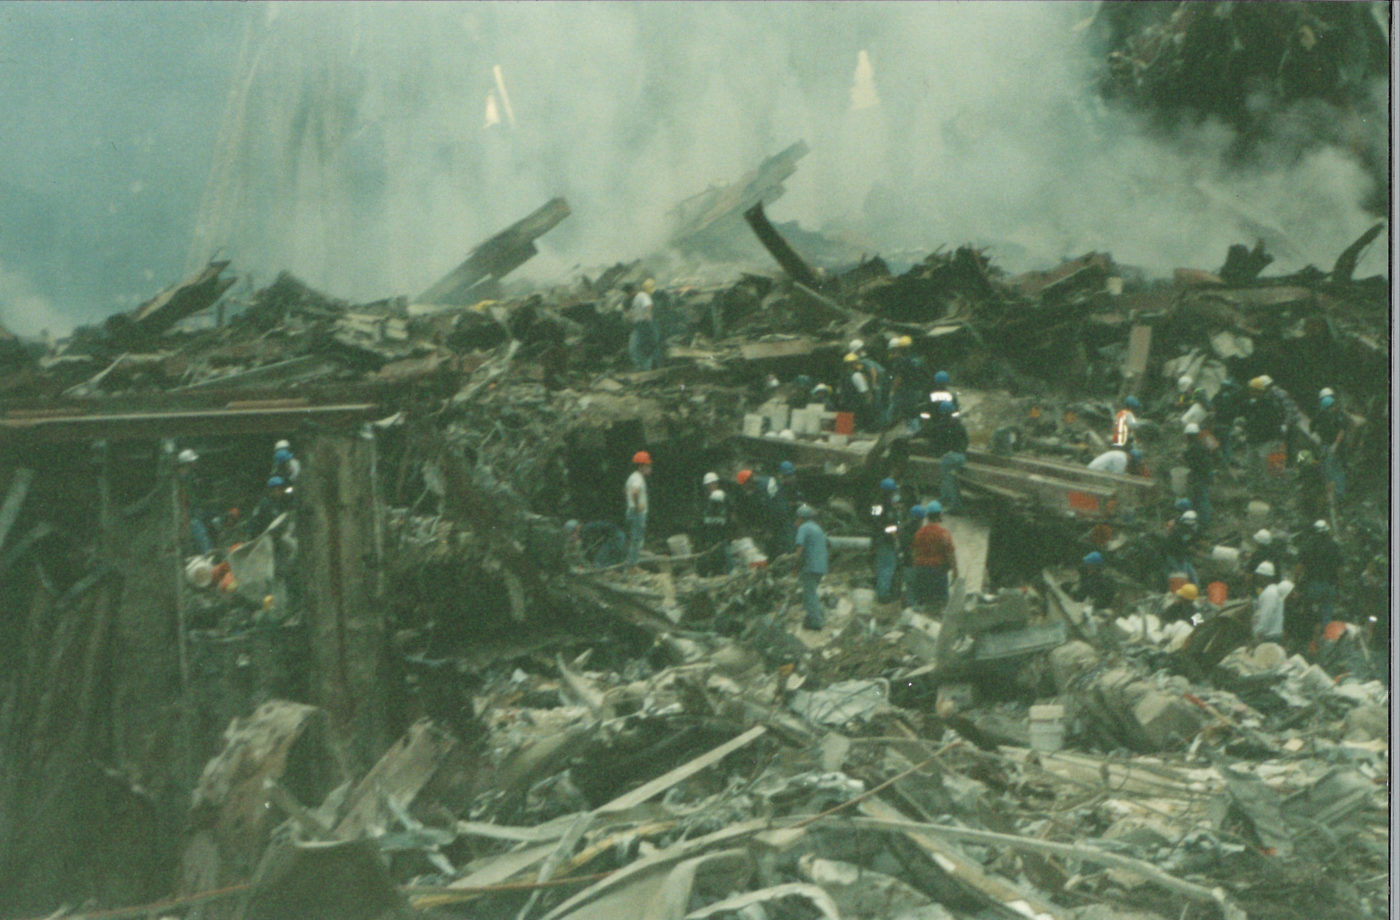 Workers on the Rubble from the WTC